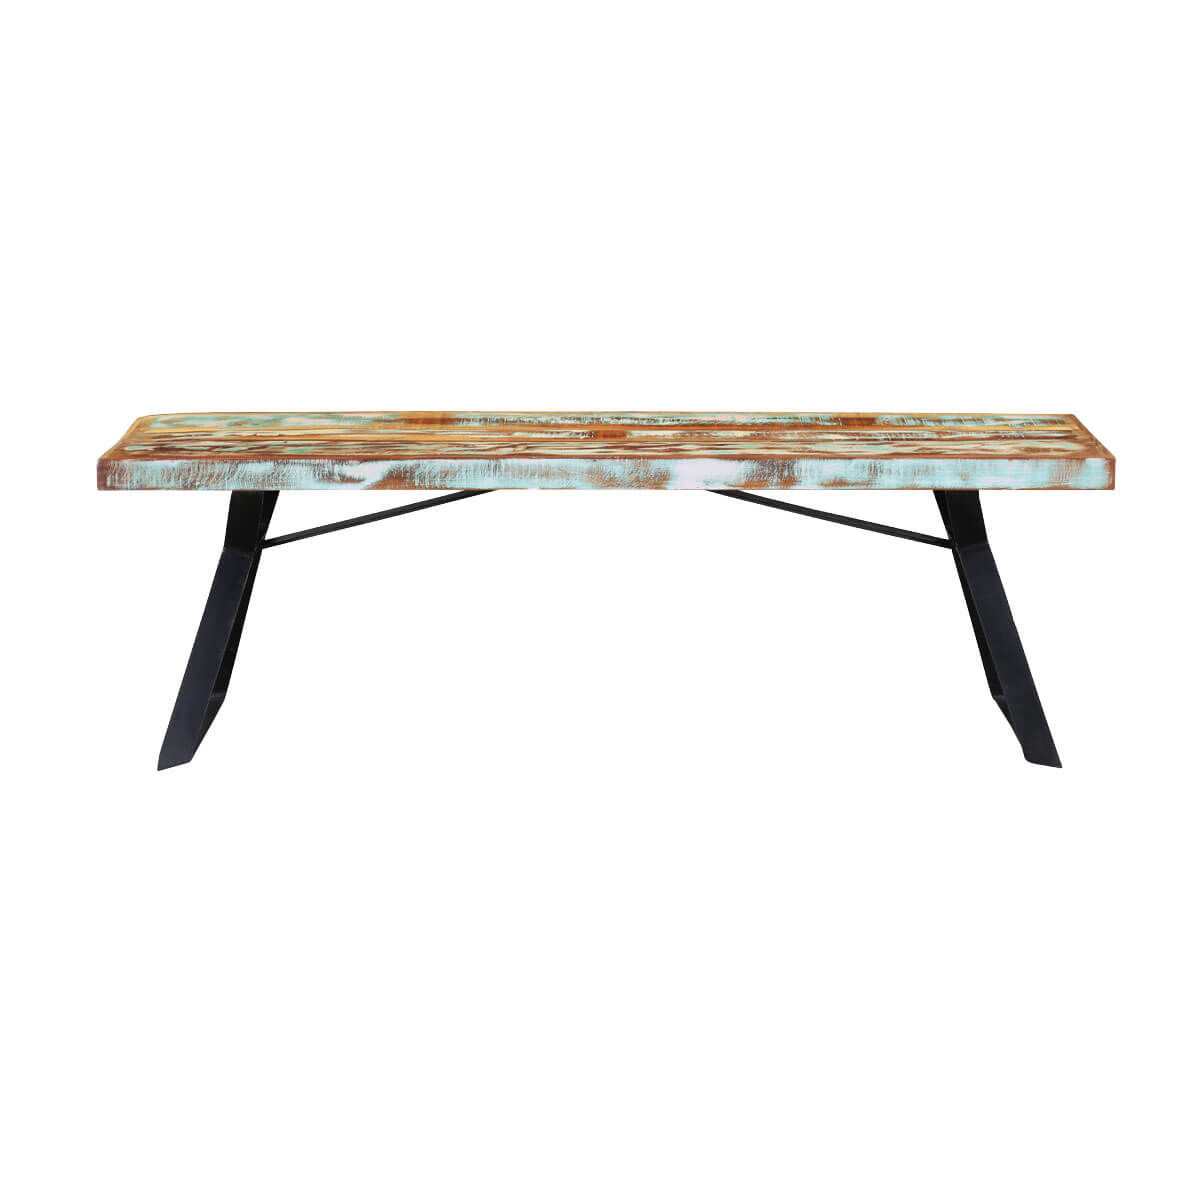 ... Rainbow 59 Handcrafted Reclaimed Wood Industrial Dining Bench ...